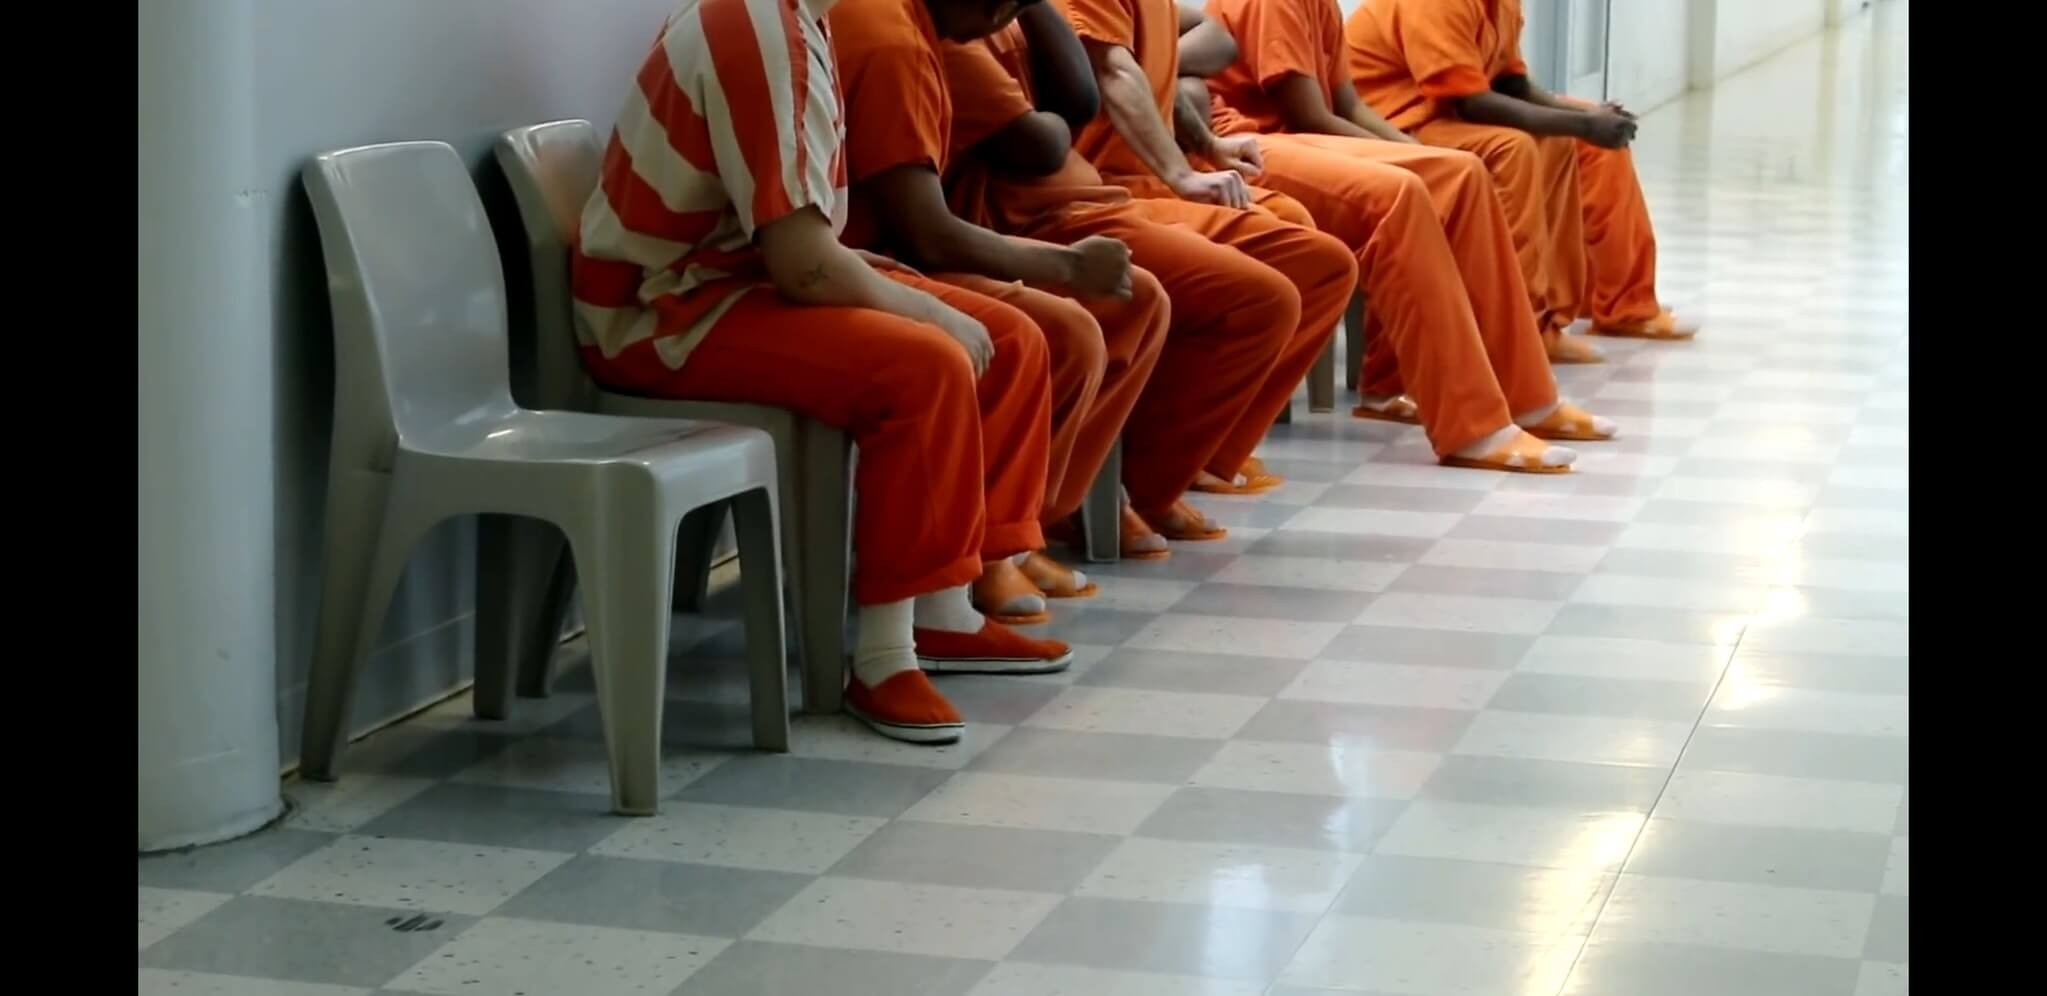 Prisoners in orange seated next to each other